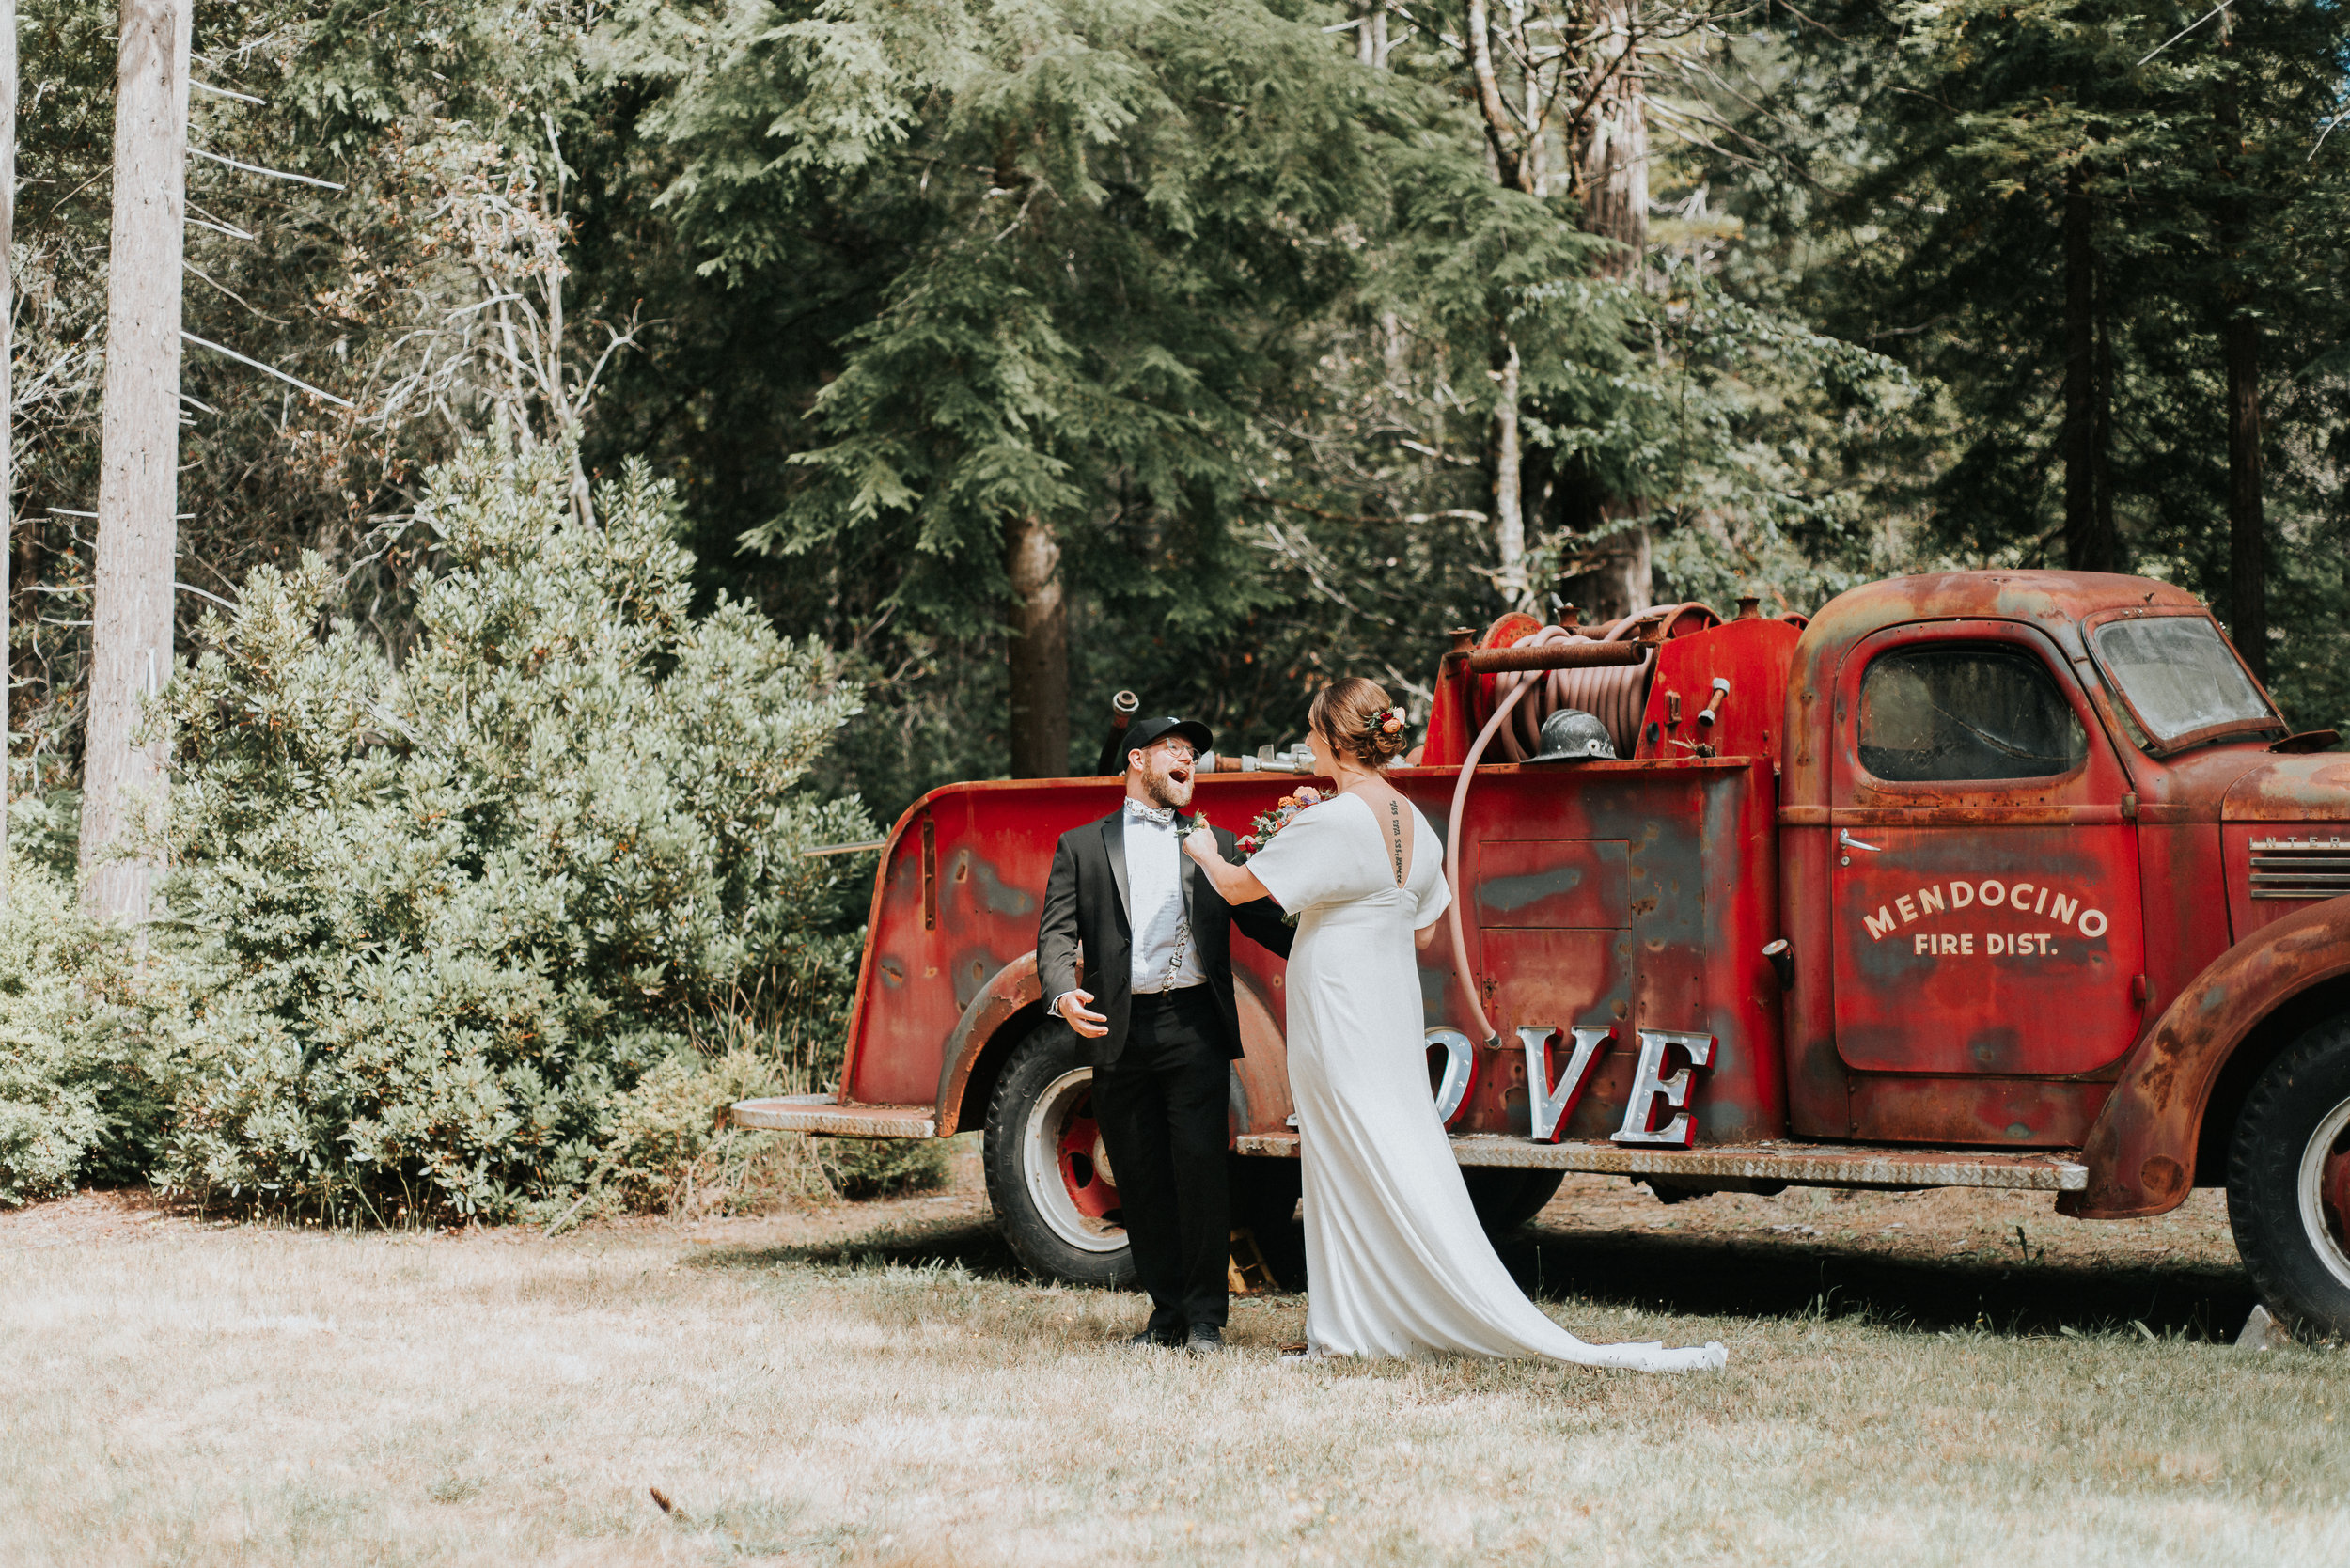 Mendocino+California+Weddings+-photographer